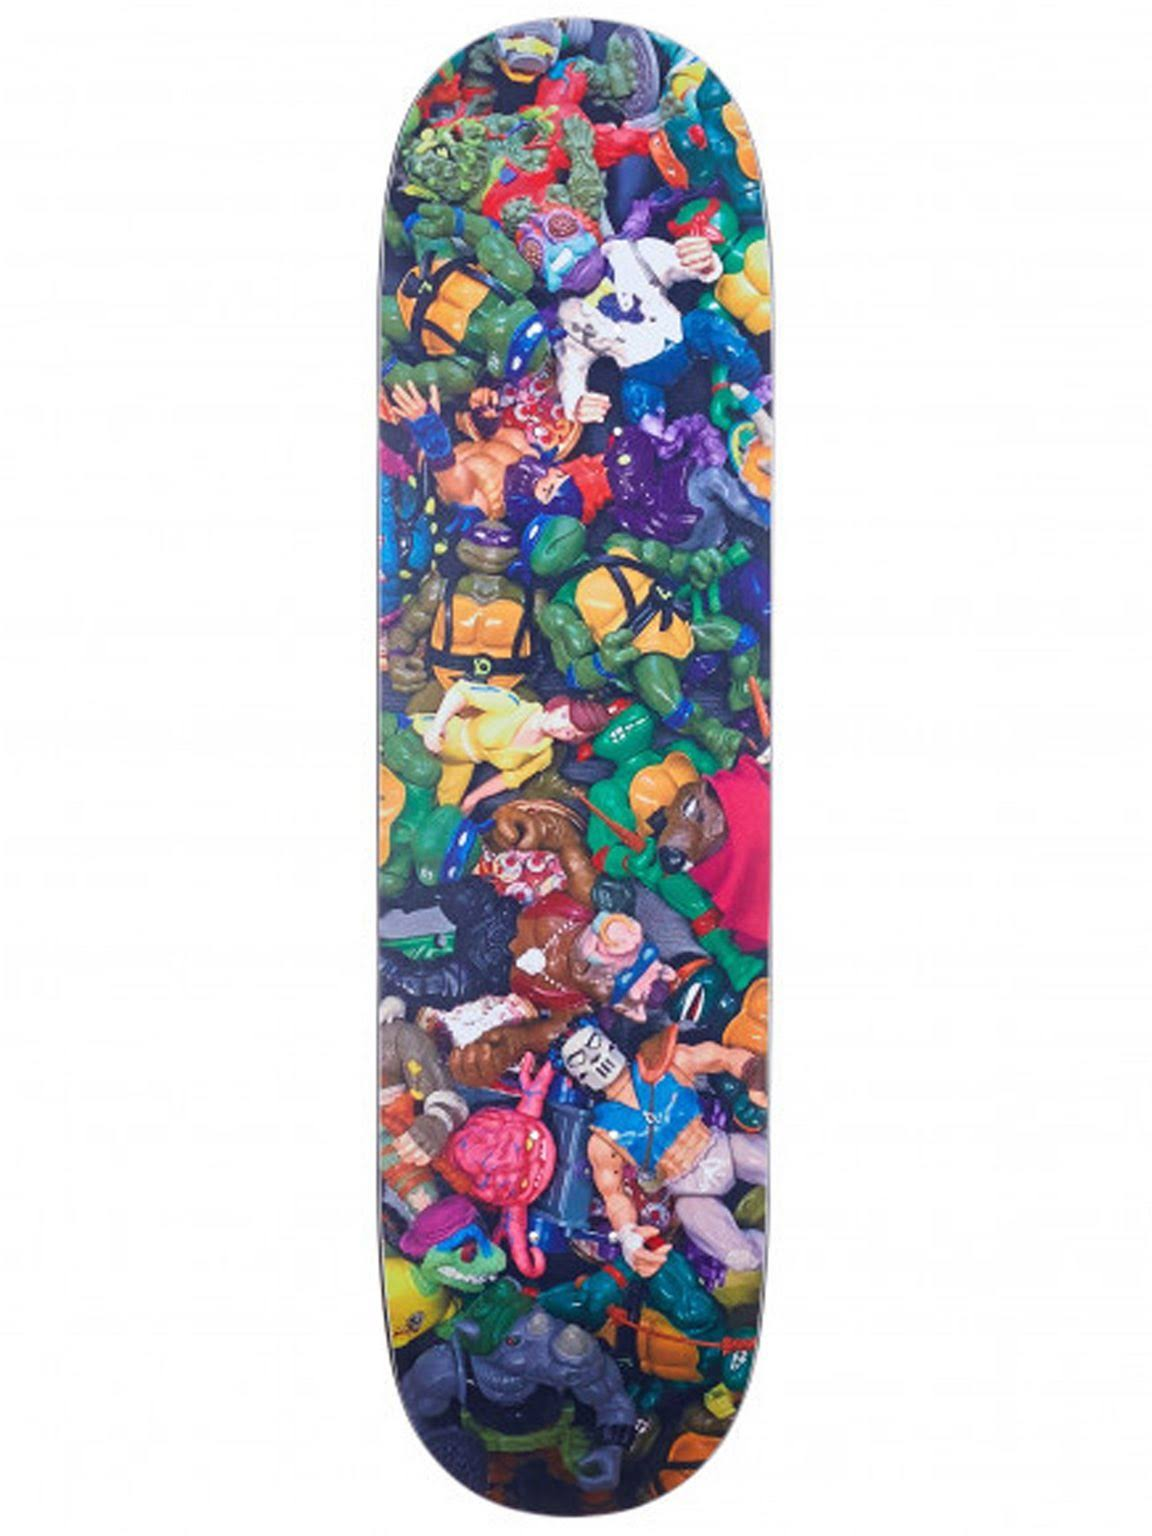 Santa Cruz Teenage Mutant Ninja Turtles Toys Santa Cruz Skateboard Deck - 8""